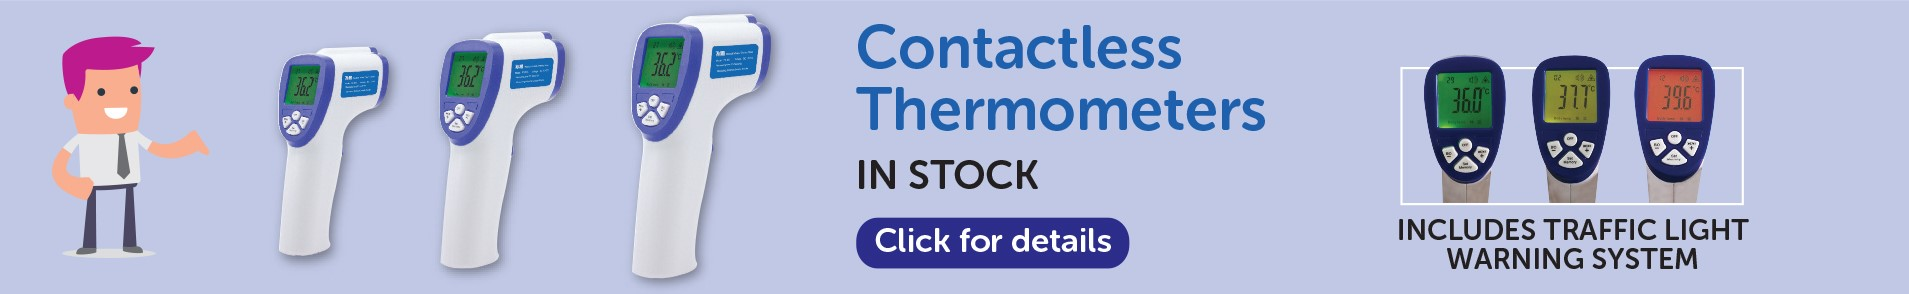 Contactless thermometers in stock